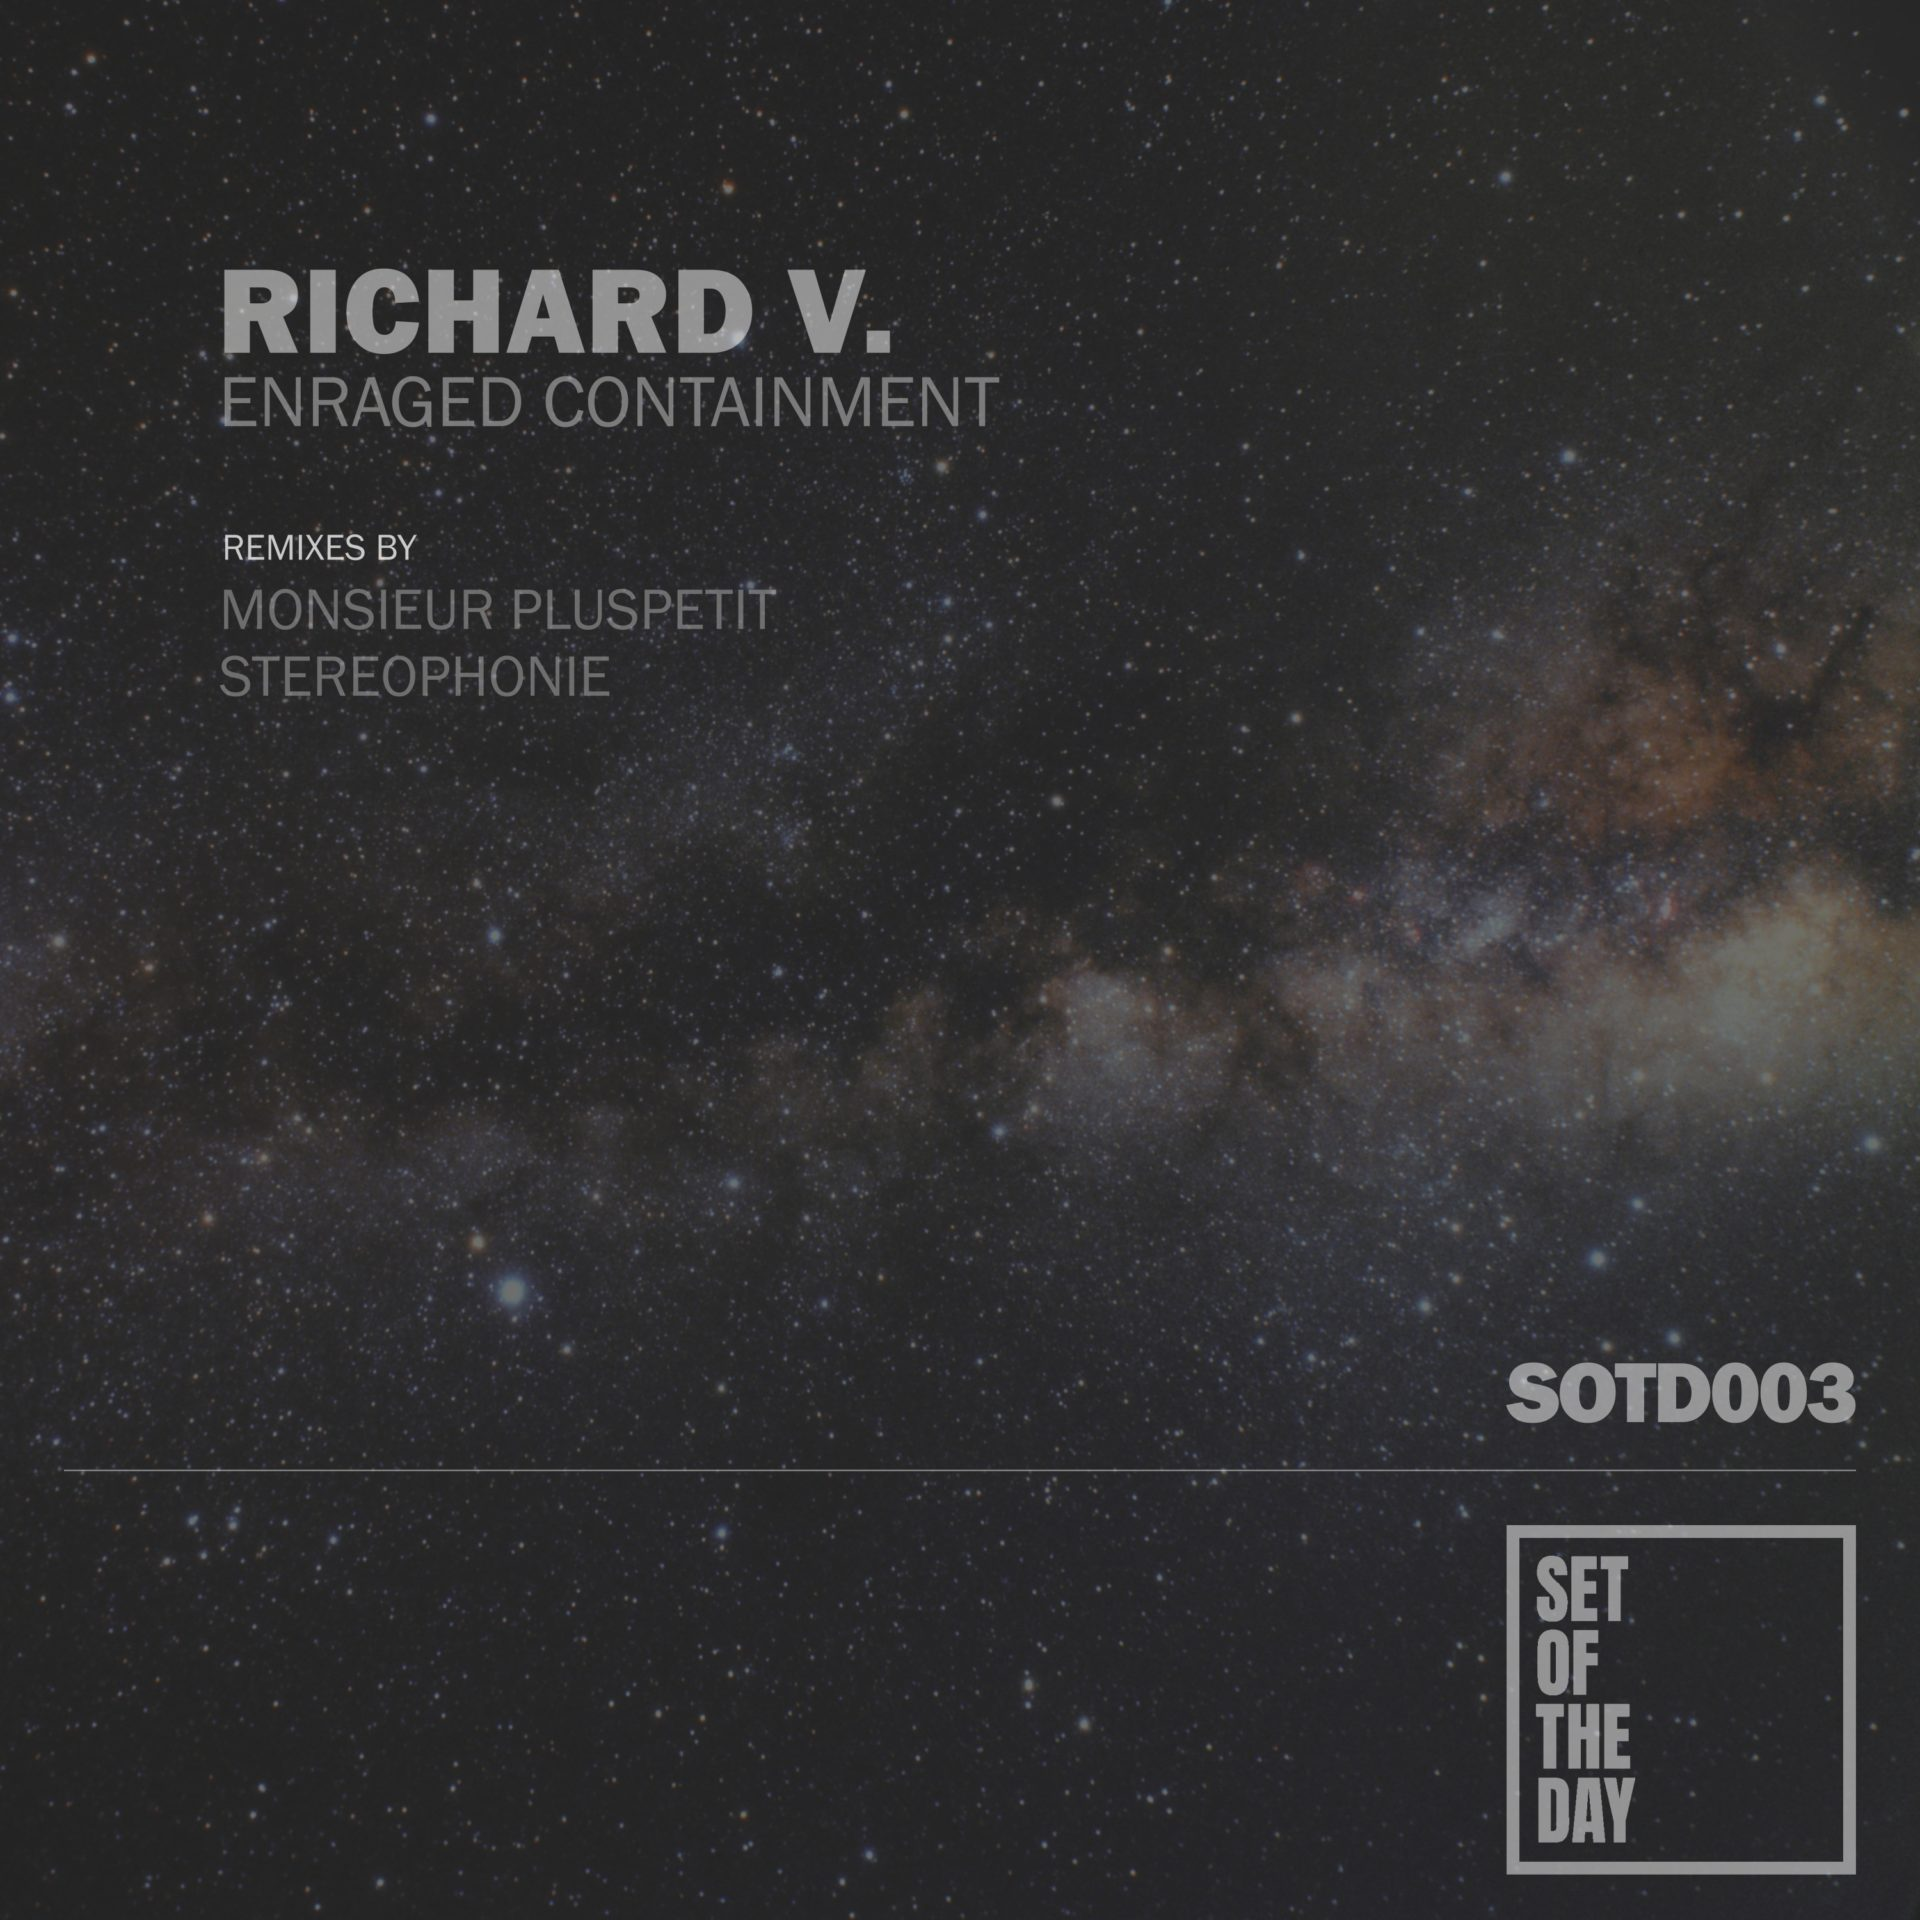 sotd003-richard-v-enraged-containment1-1920x1920 - Releases